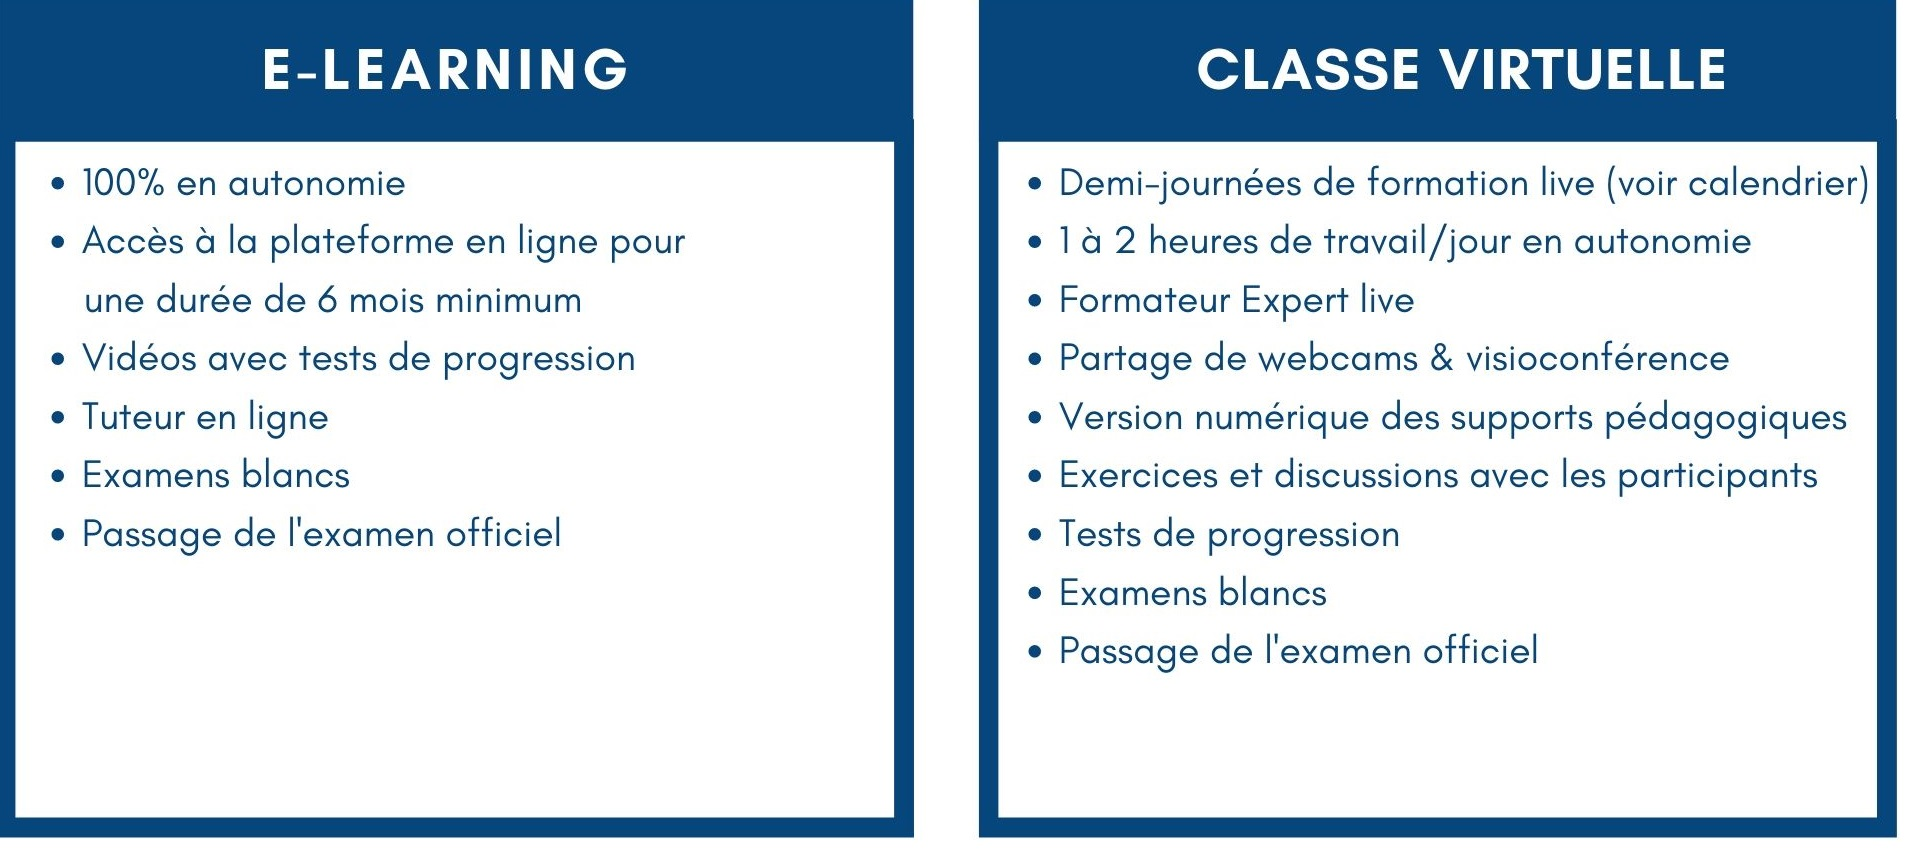 Compatatif e-learning vs classe virtuelle